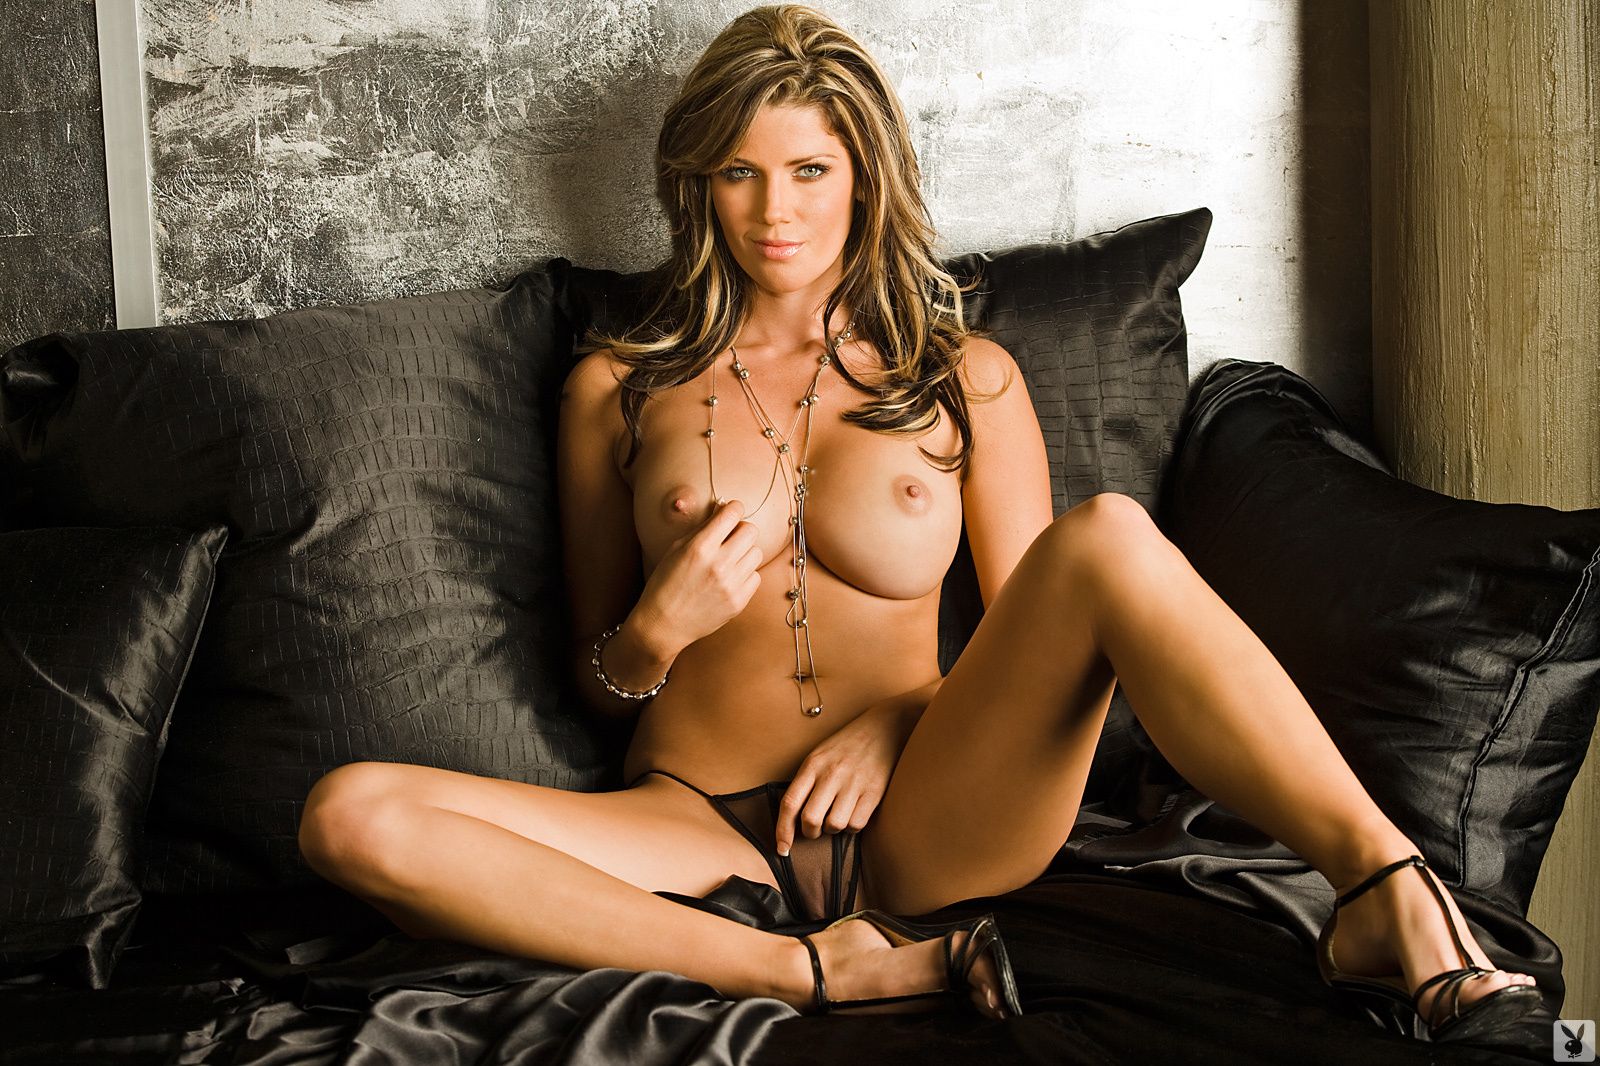 Playmate Exclusive May 2009 Crystal Mccahill0020